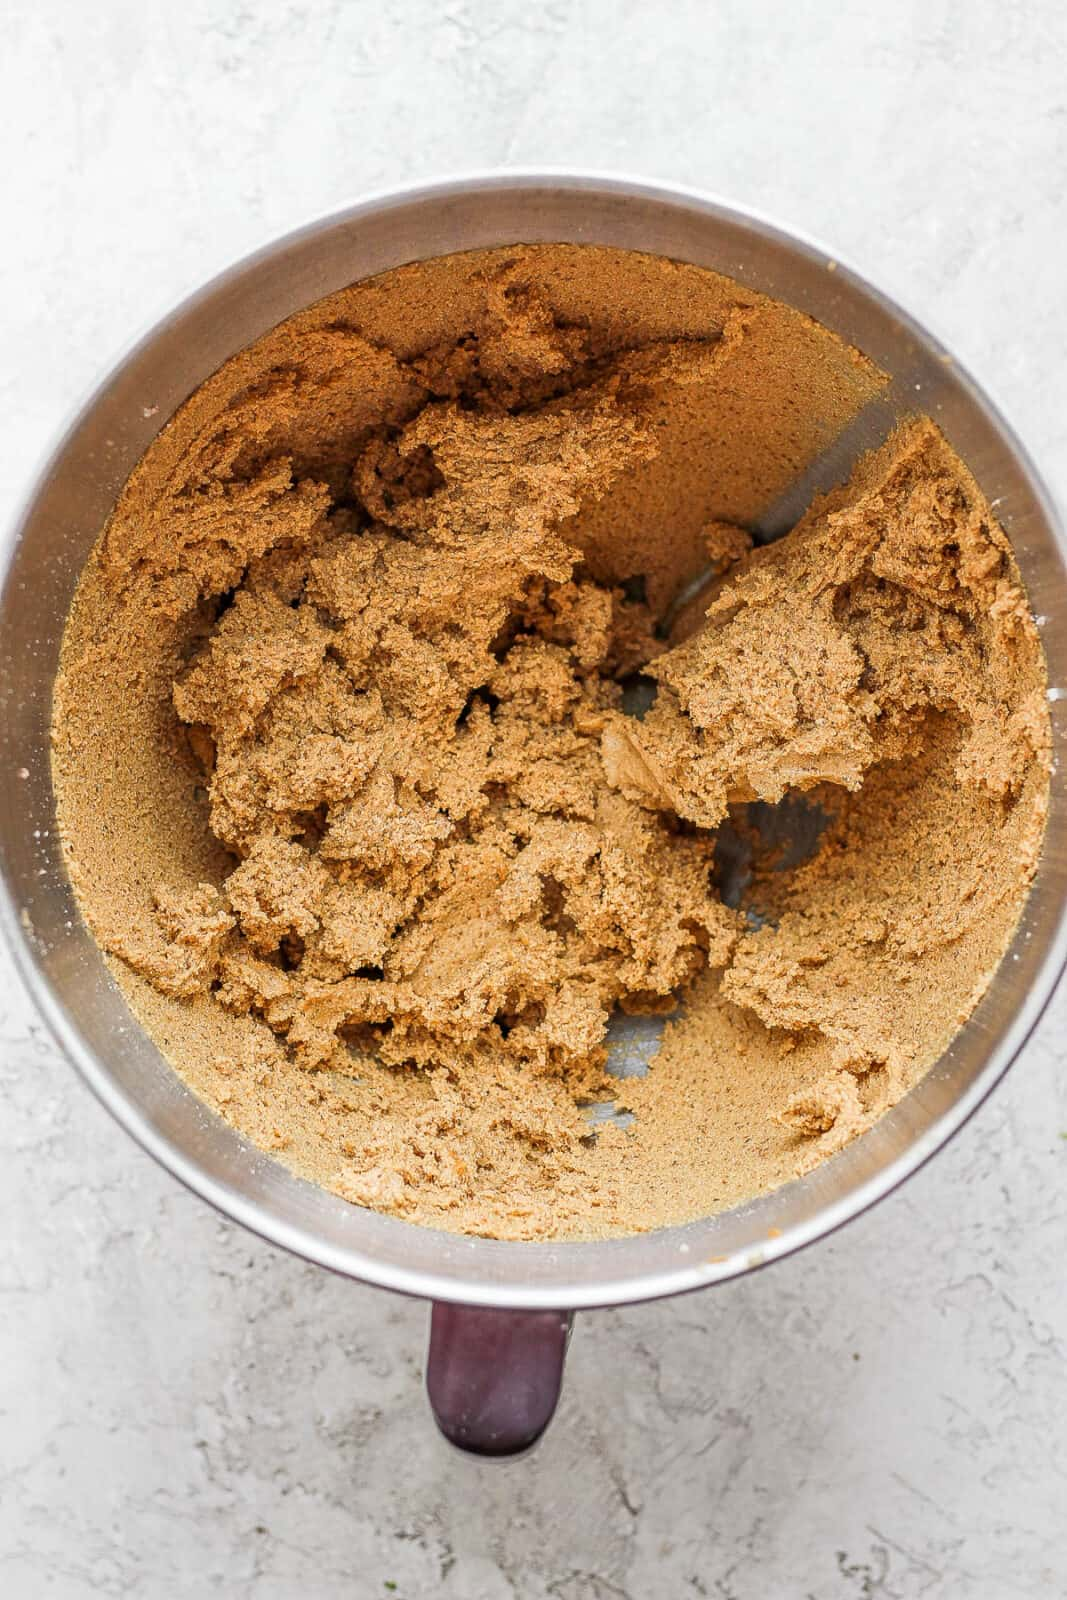 Monster cookie dough in a mixing bowl.